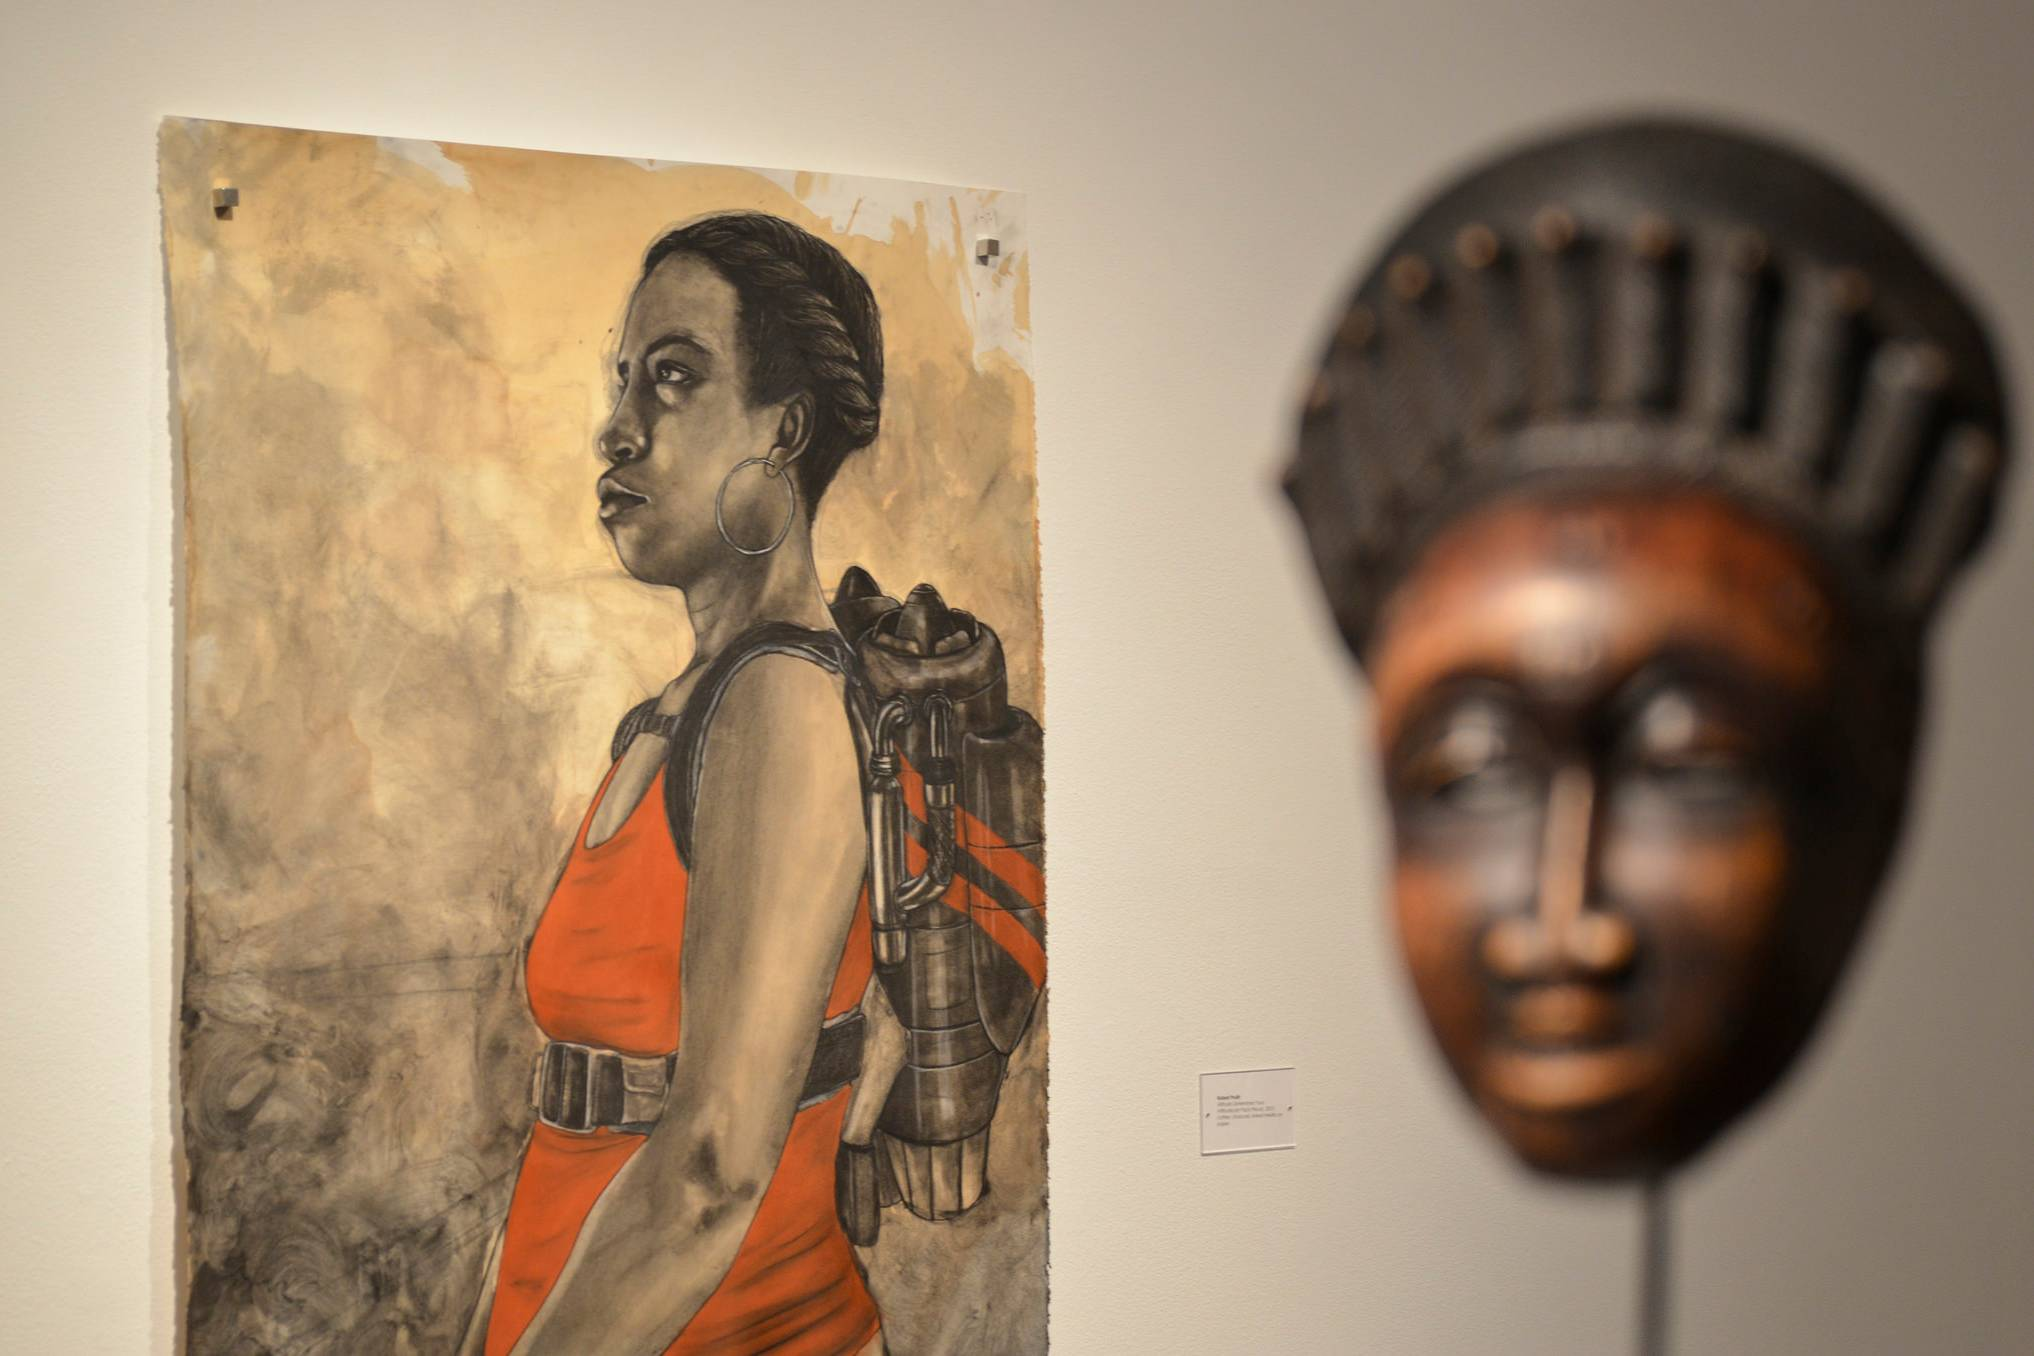 An exhibit of work from African American artists and their connection to African Art opened Feb. 9 during a reception and artist lecture as part of the Black History Month activities at San Diego Mesa College.